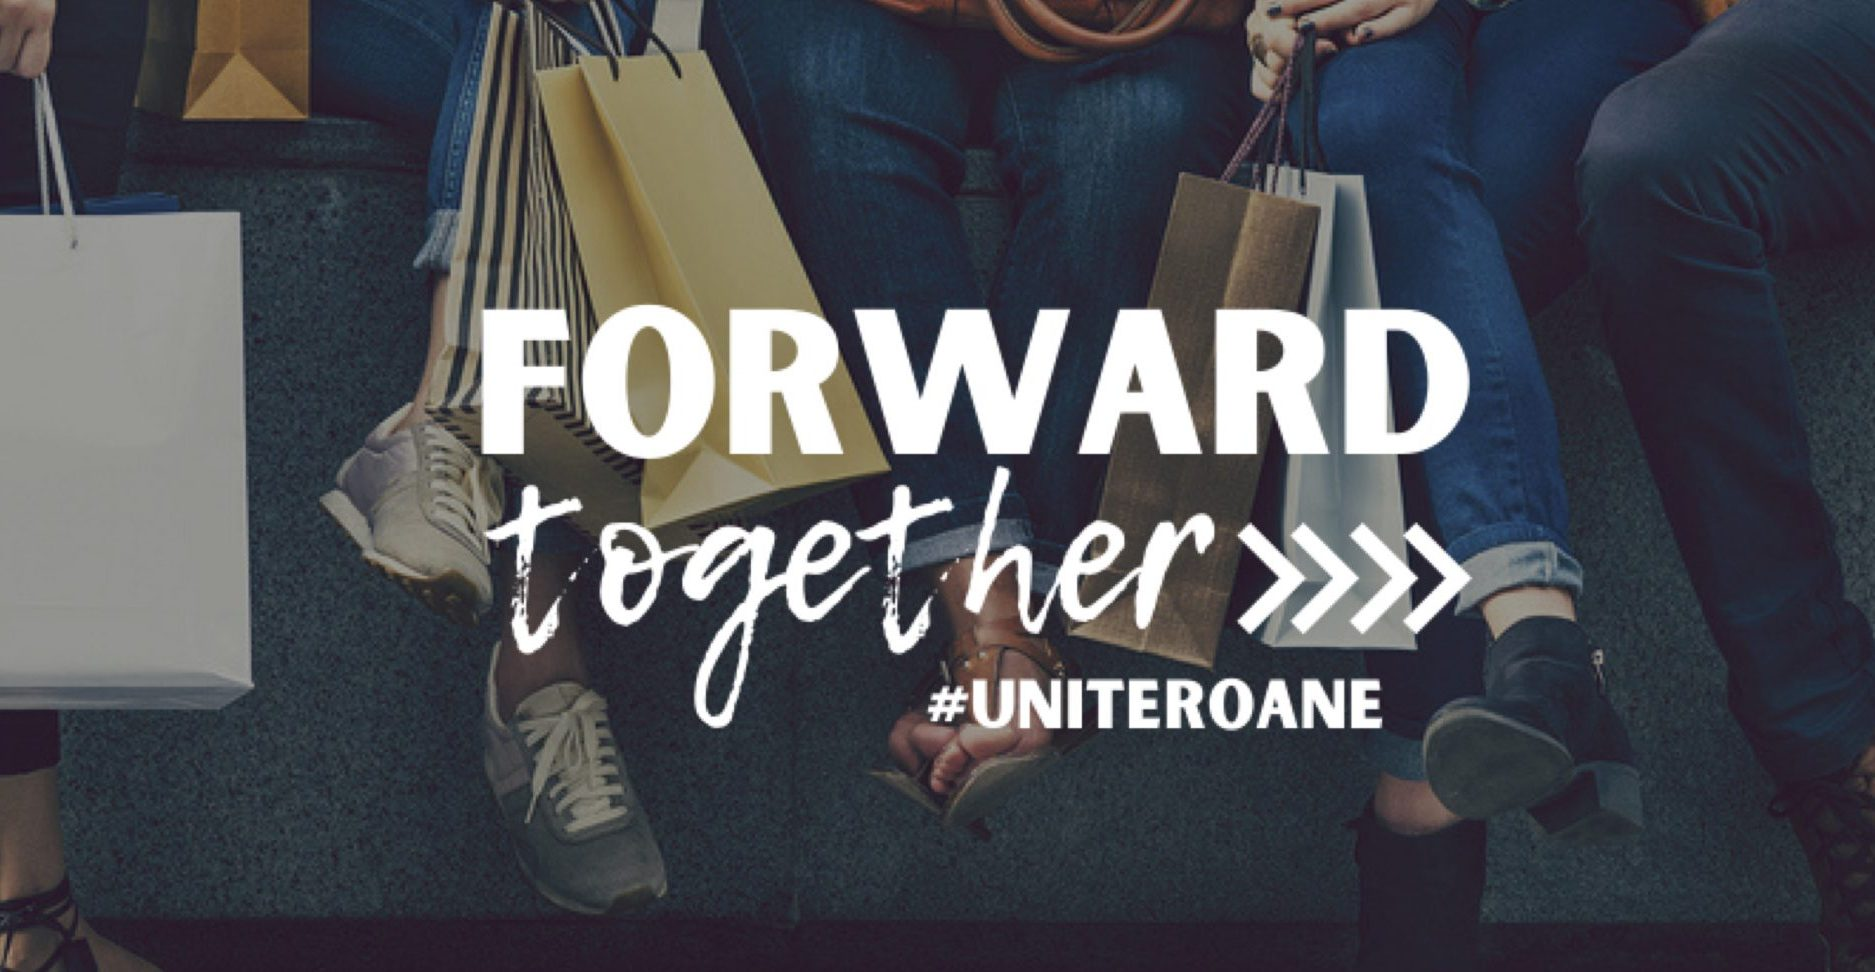 Forward Together Unite Roane Cover Photo